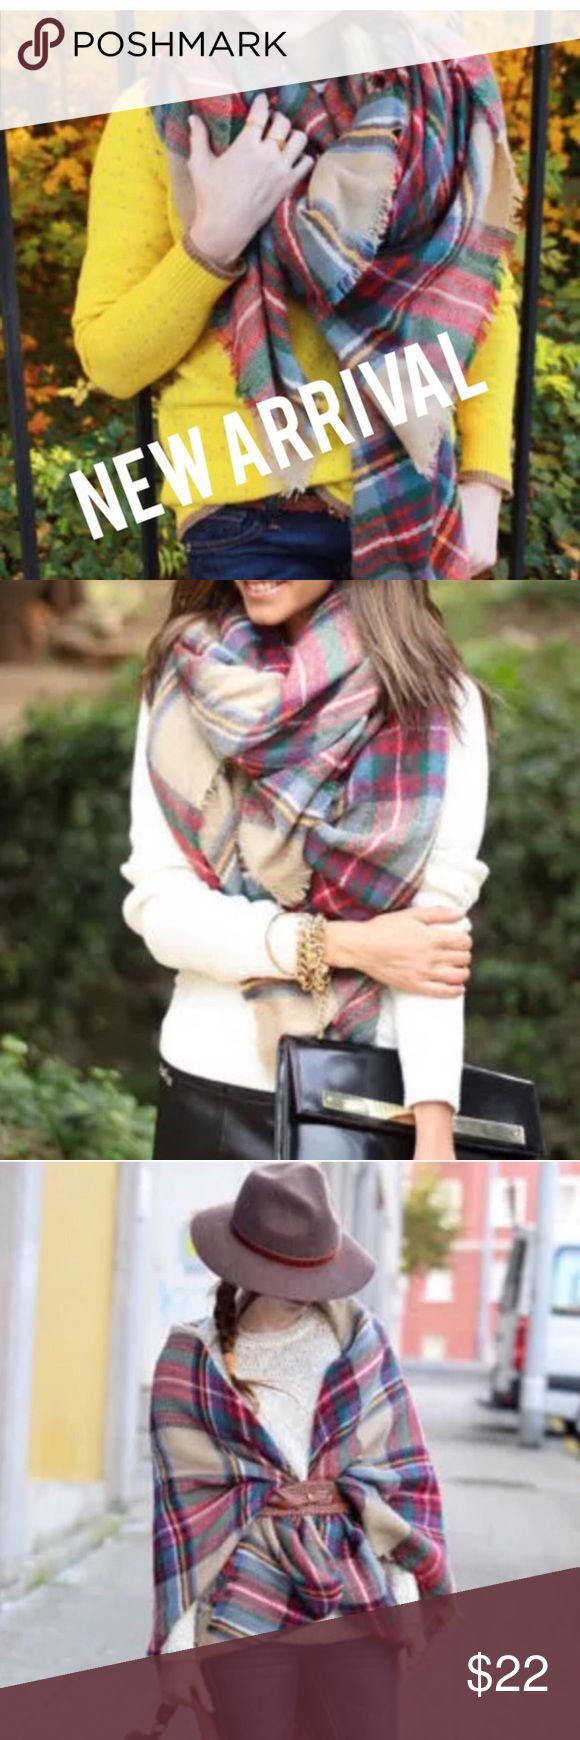 ✨SQUARE BLANKET SCARF- TAN TARTAN PLAID✨ 🍂🍁BEST SELLER🍂🍁.                                      Brand New and Great quality Material: Wool Blend 55 inches by 55 inches.                                               Oversized blanket scarf.  Tan and Red Tartan Plaid. A Must Have! Can also be worn as a wrap or as a blanket. Not Zara just using it for exposure. Blanket Scarves. Reasonable offers will always be considered and please check out my other listings🍁🍂✨Bundle, get a discount, and…